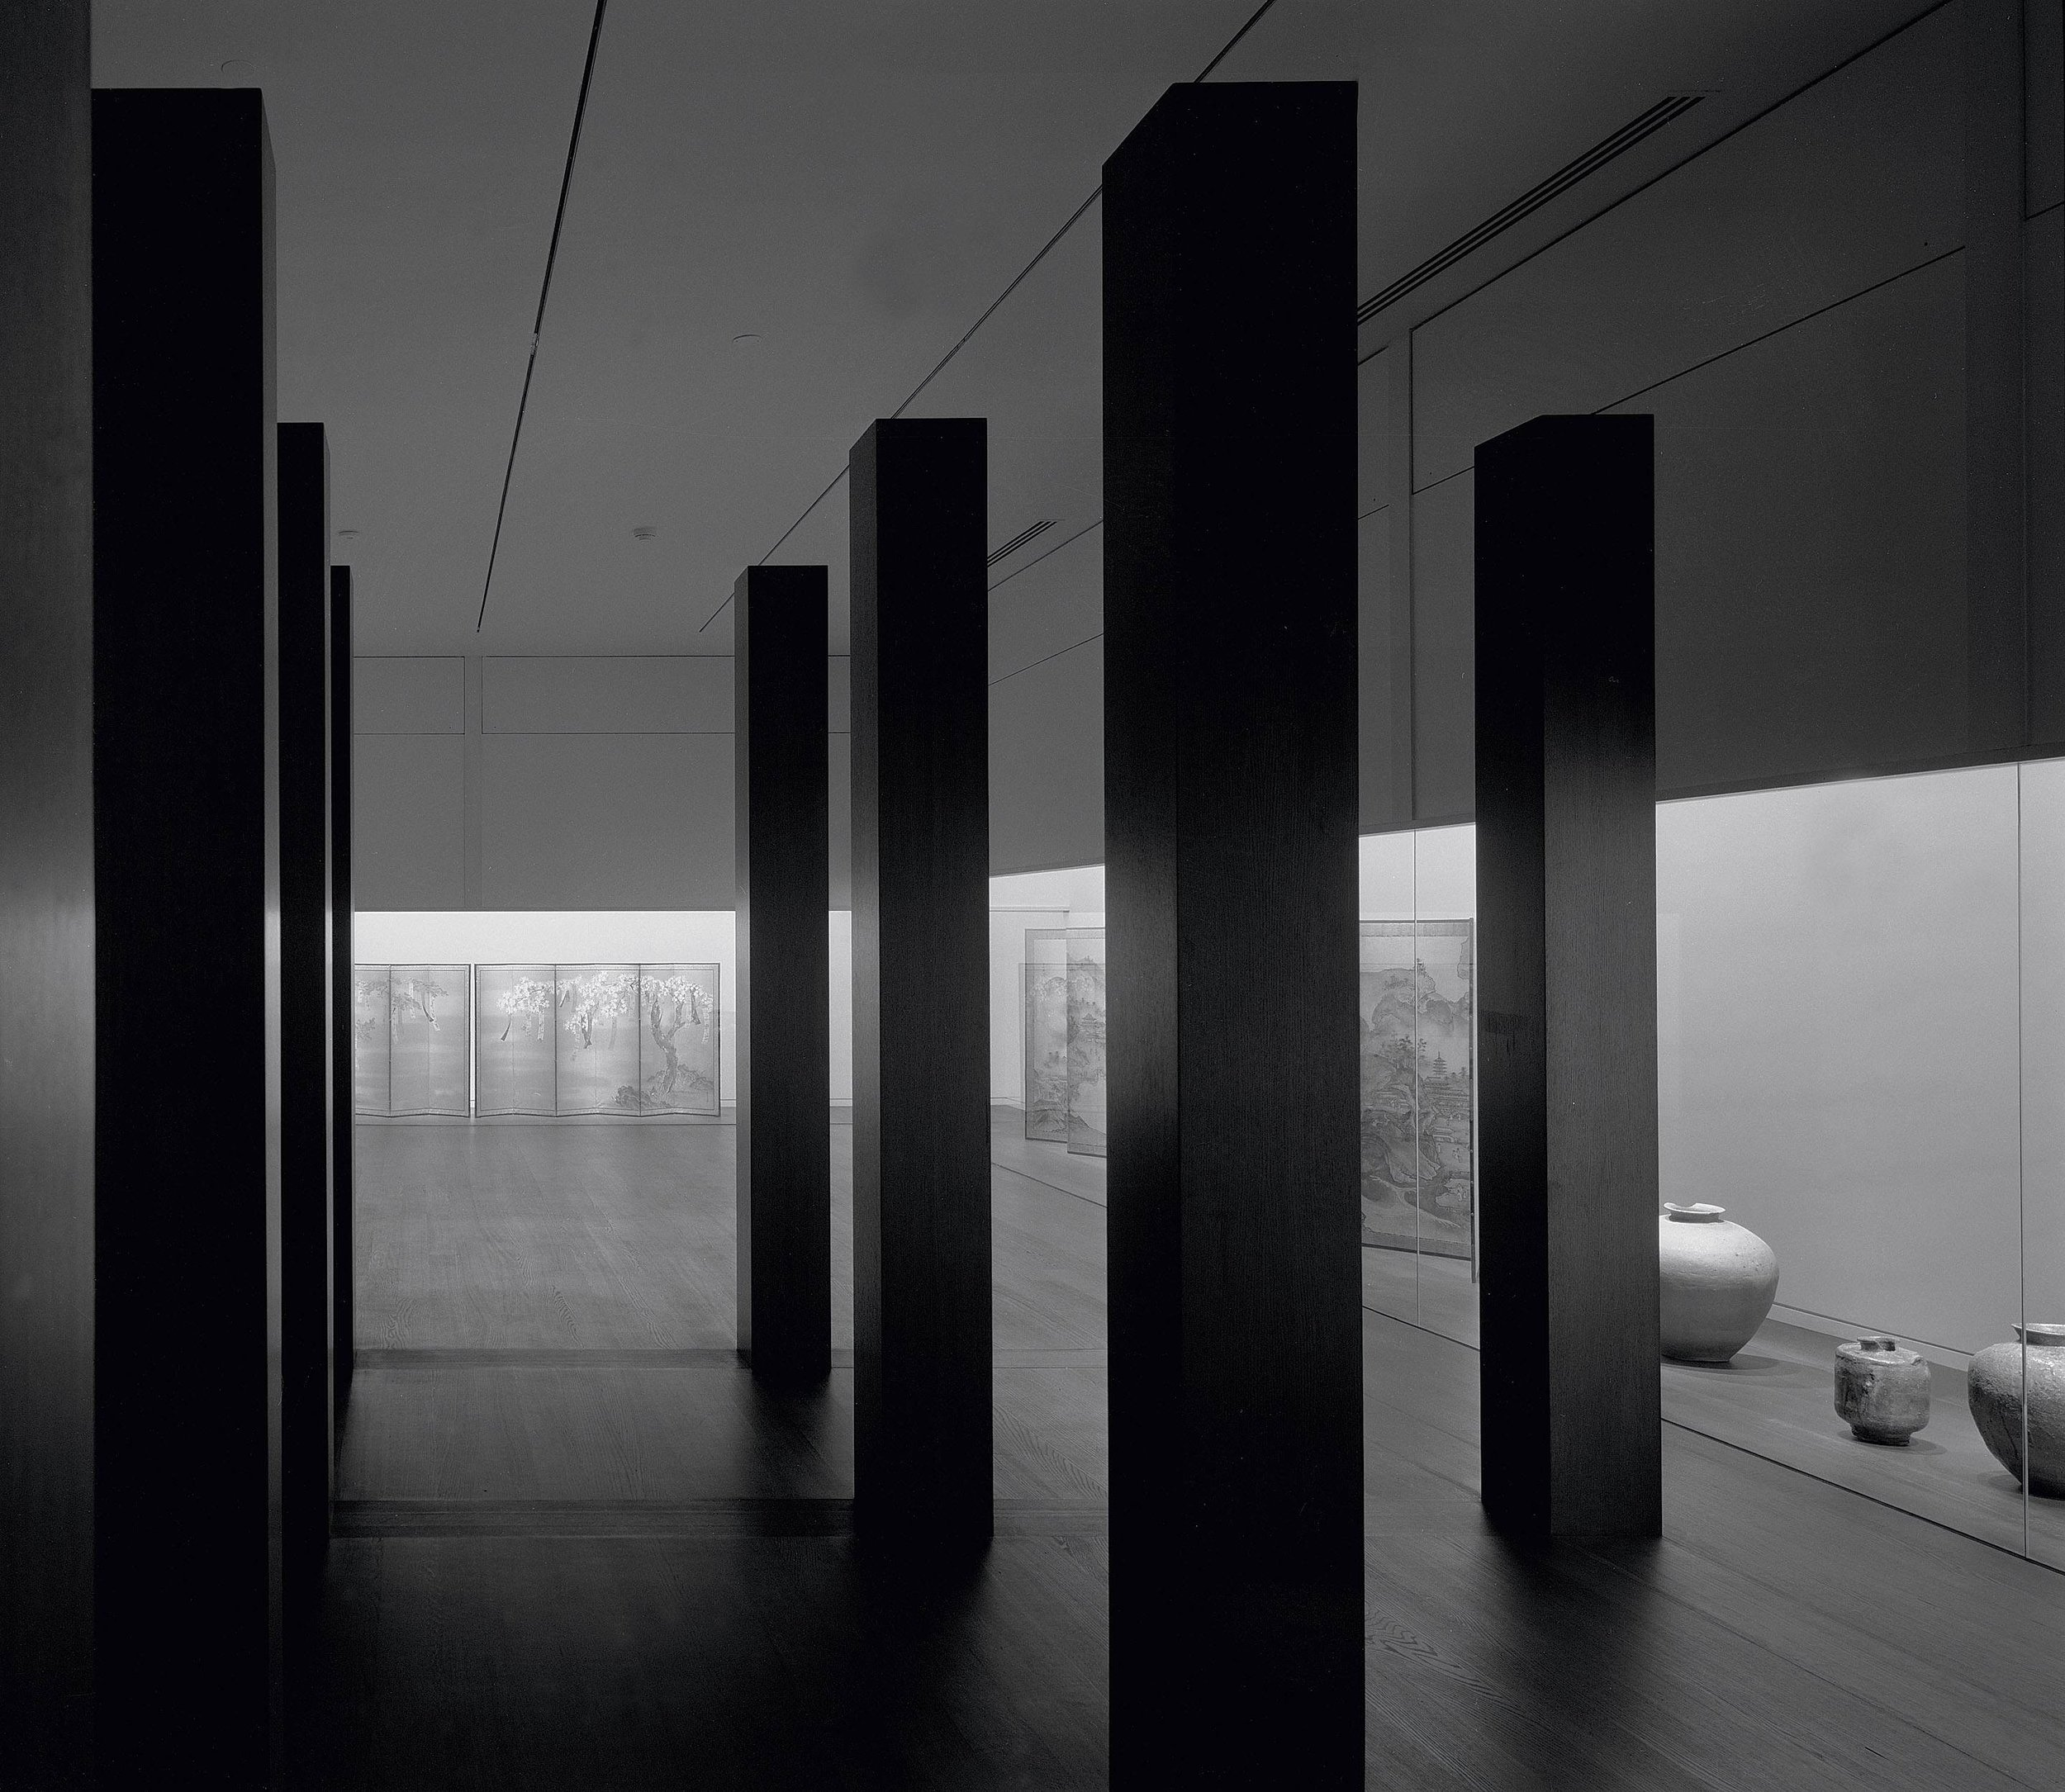 A view of the Ando Gallery, Department of Asian Art, The Art Institute of Chicago, 1992. Photograph by Thomas Cinoman. Courtesy the Art Institute of Chicago.